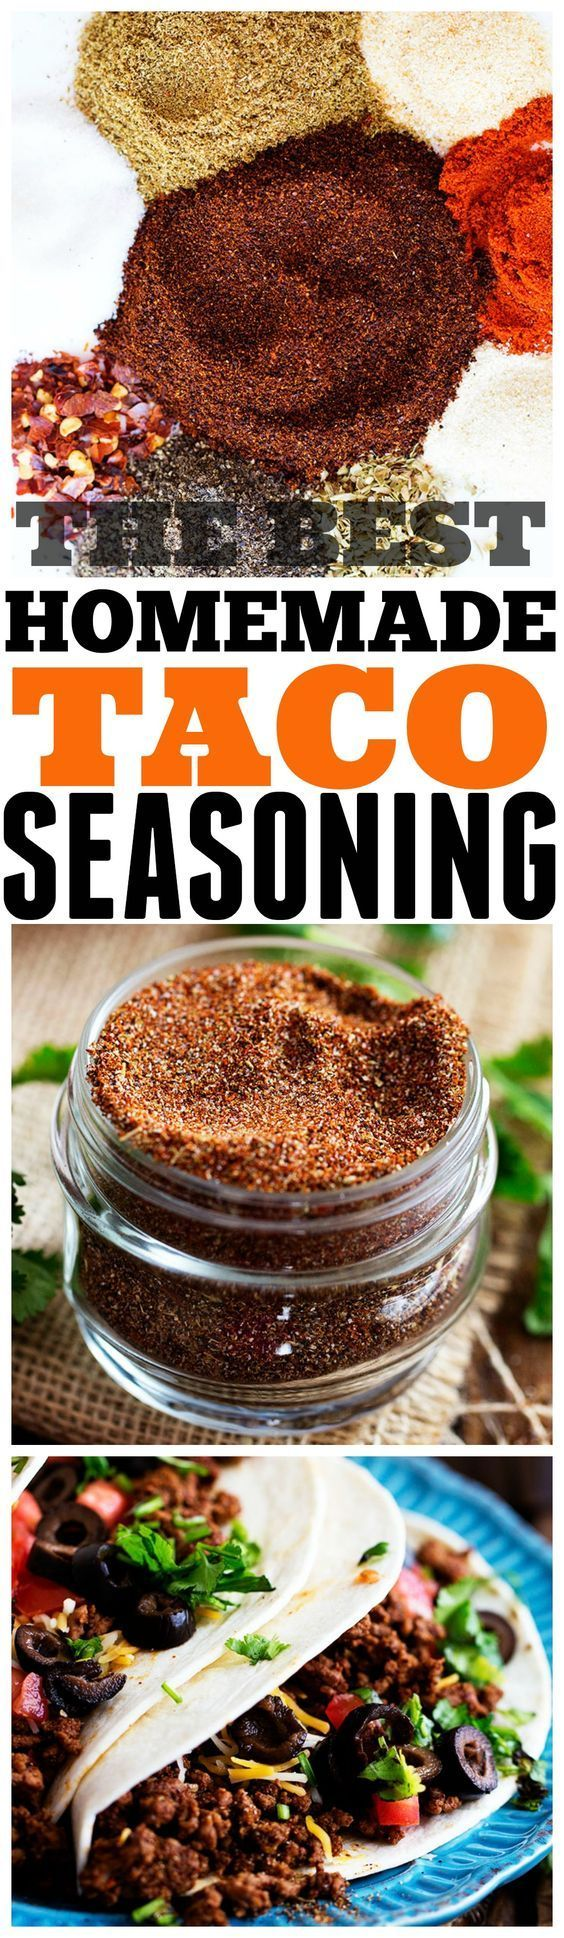 This is THE BEST homemade taco seasoning! Perfect amount of spices and you will never buy it again!: